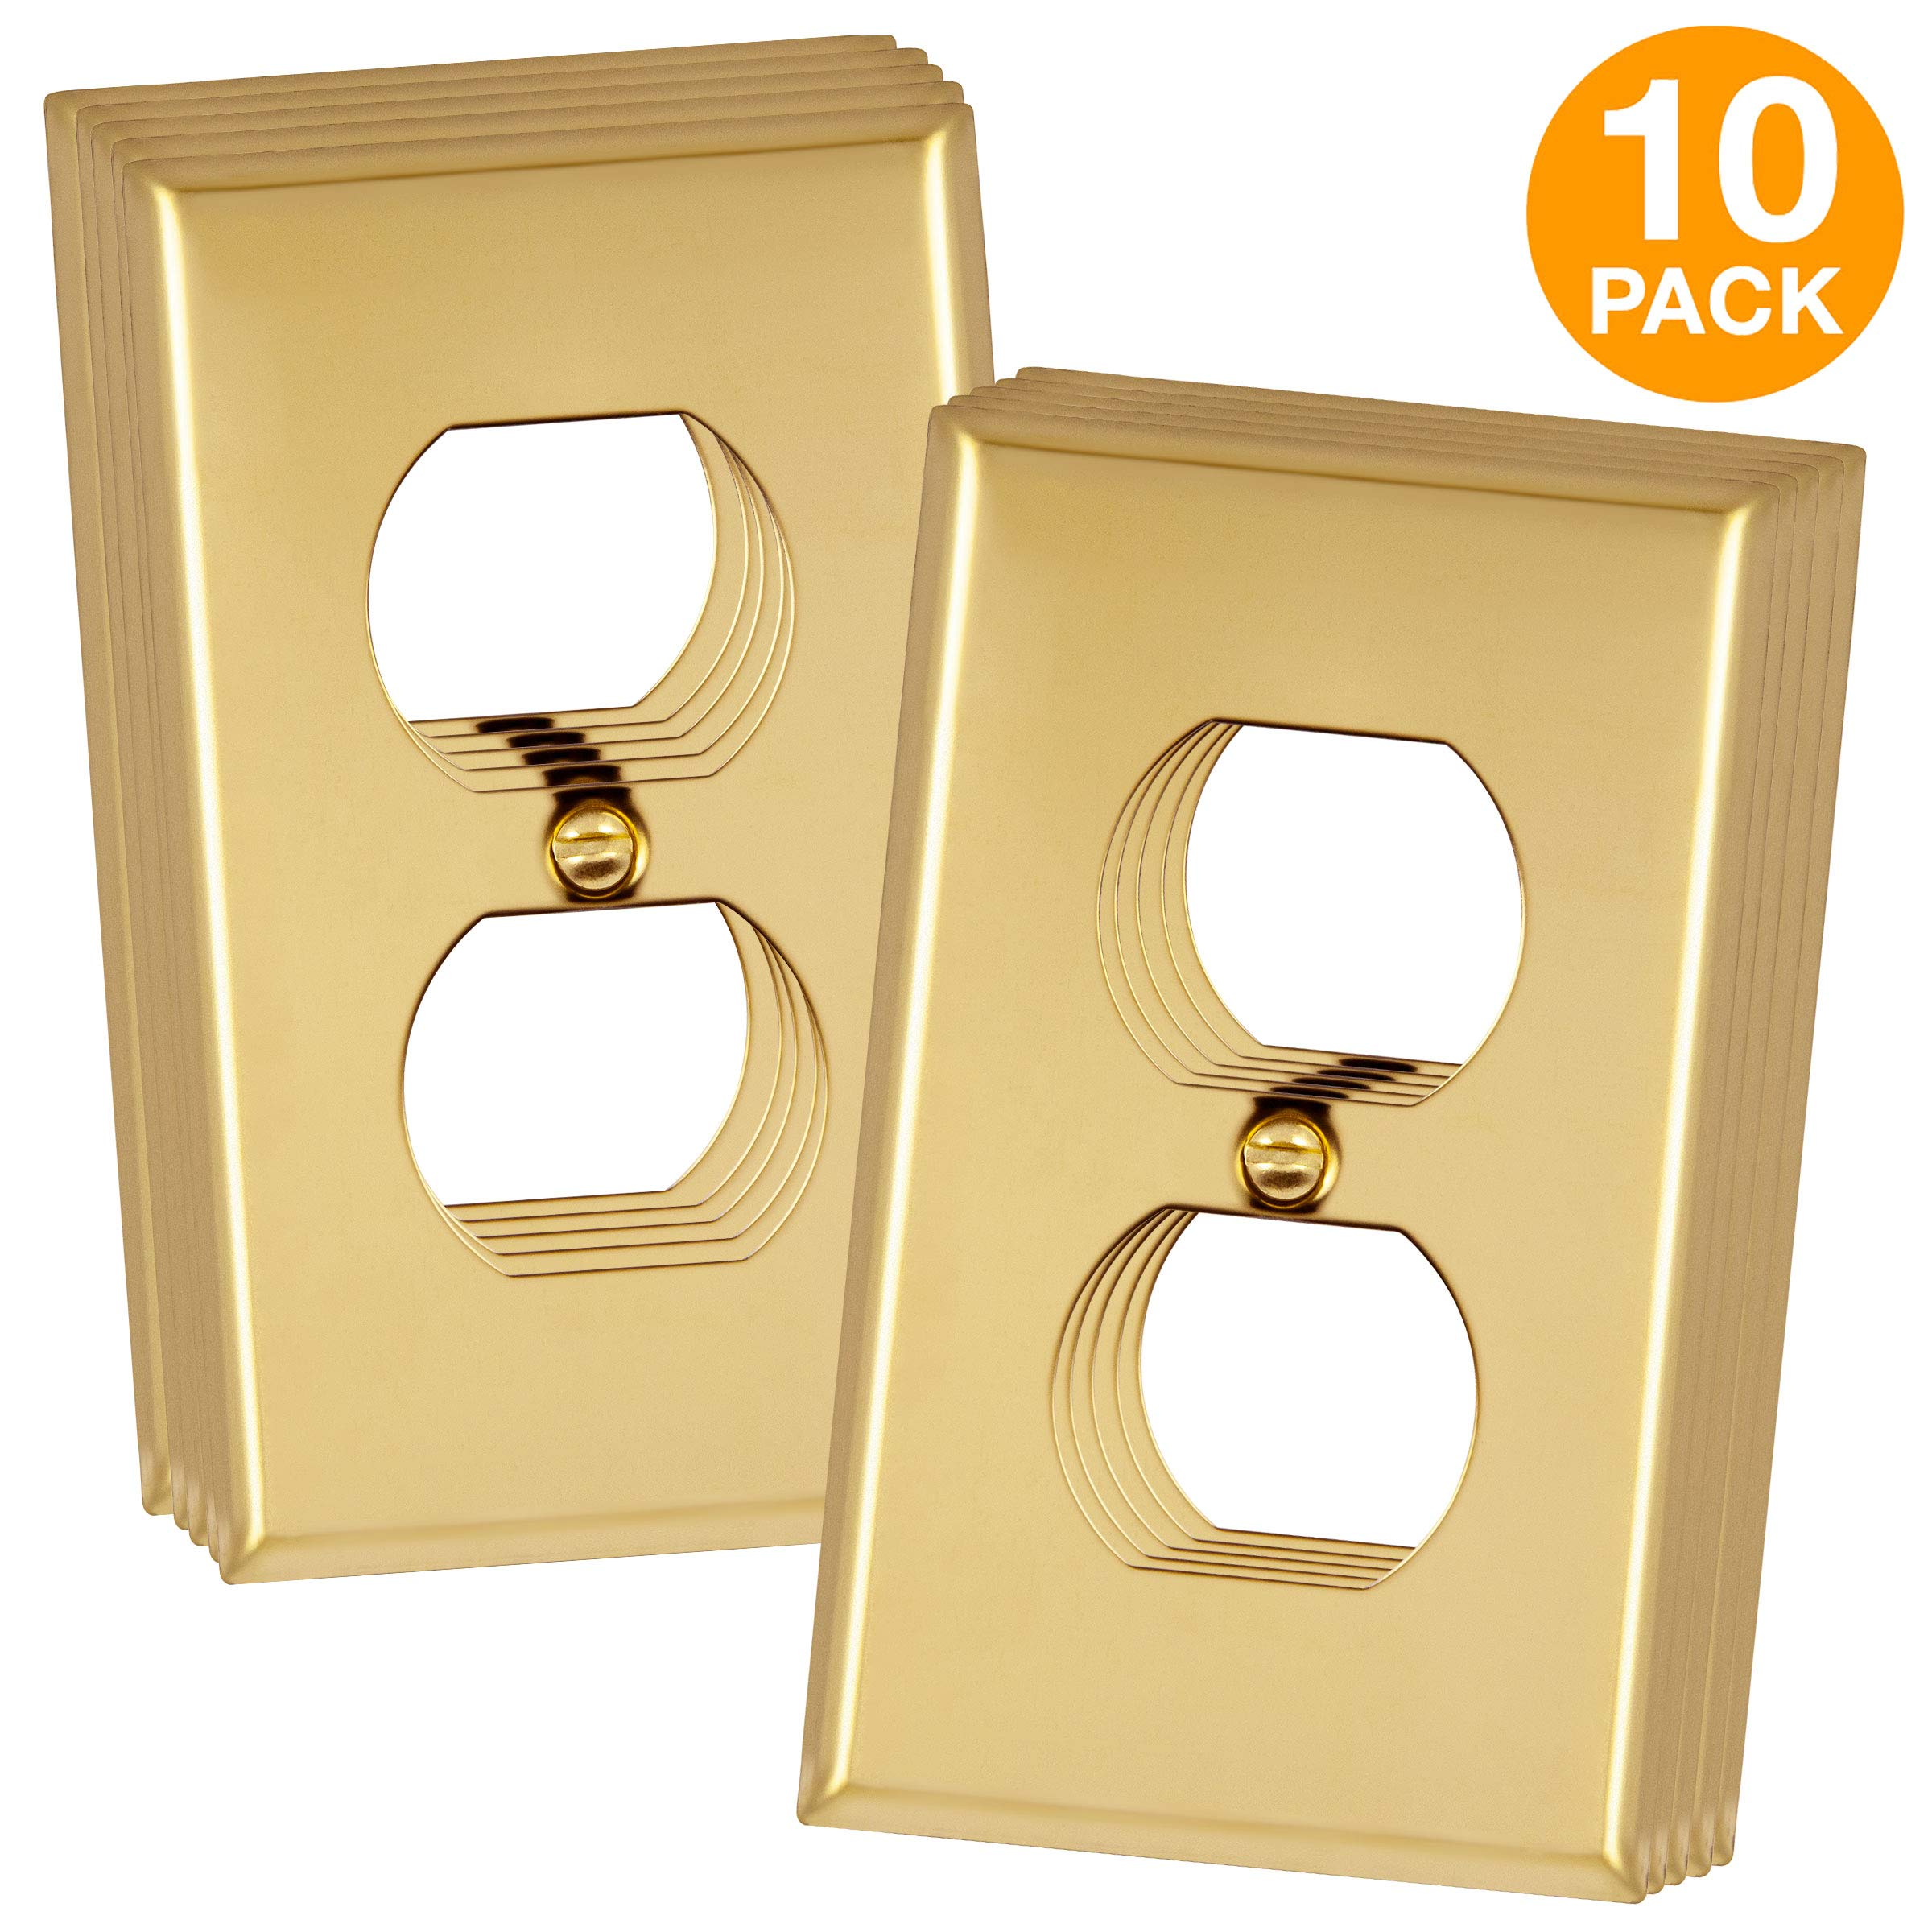 ENERLITES Duplex Receptacle Outlet Metal Wall Plate, Corrosive Resistant, Size 1-Gang 4.50'' x 2.76'', 7721-PB-10PCS, 302 Polished Brass (10 Pack)